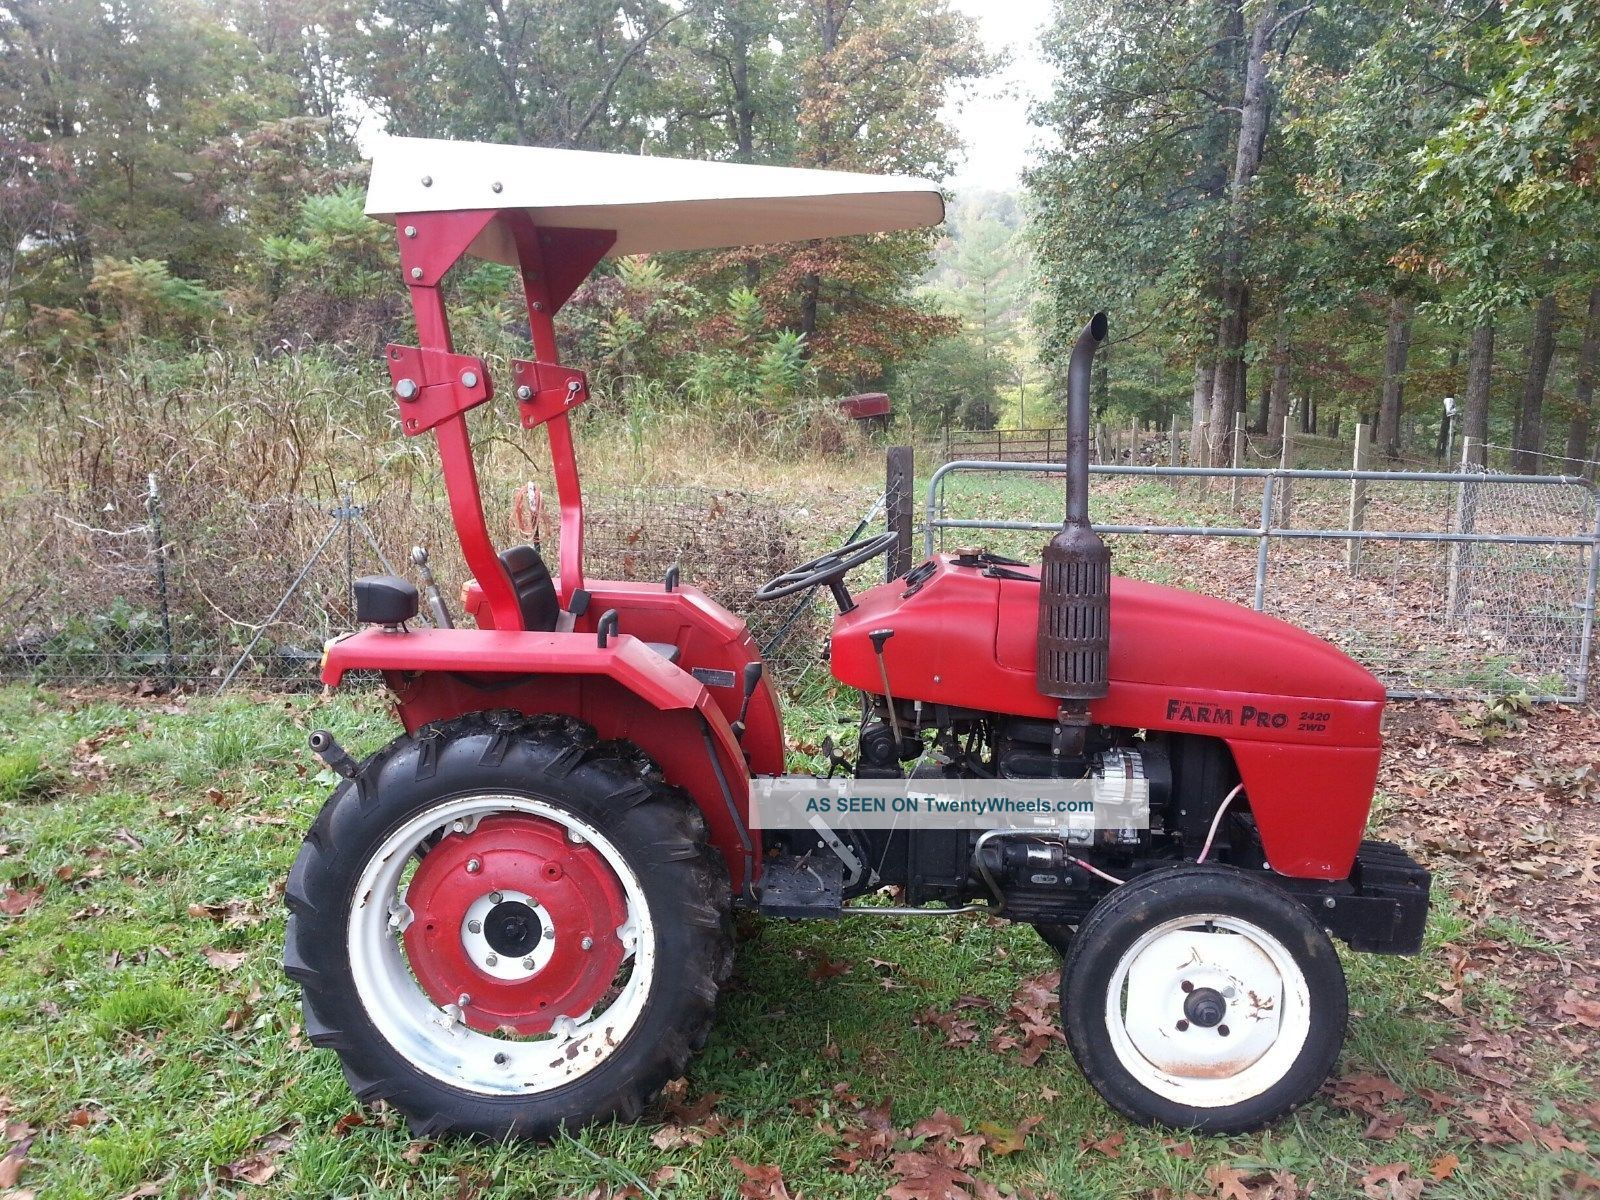 Farm Pro 2420 Tractor Tractors photo